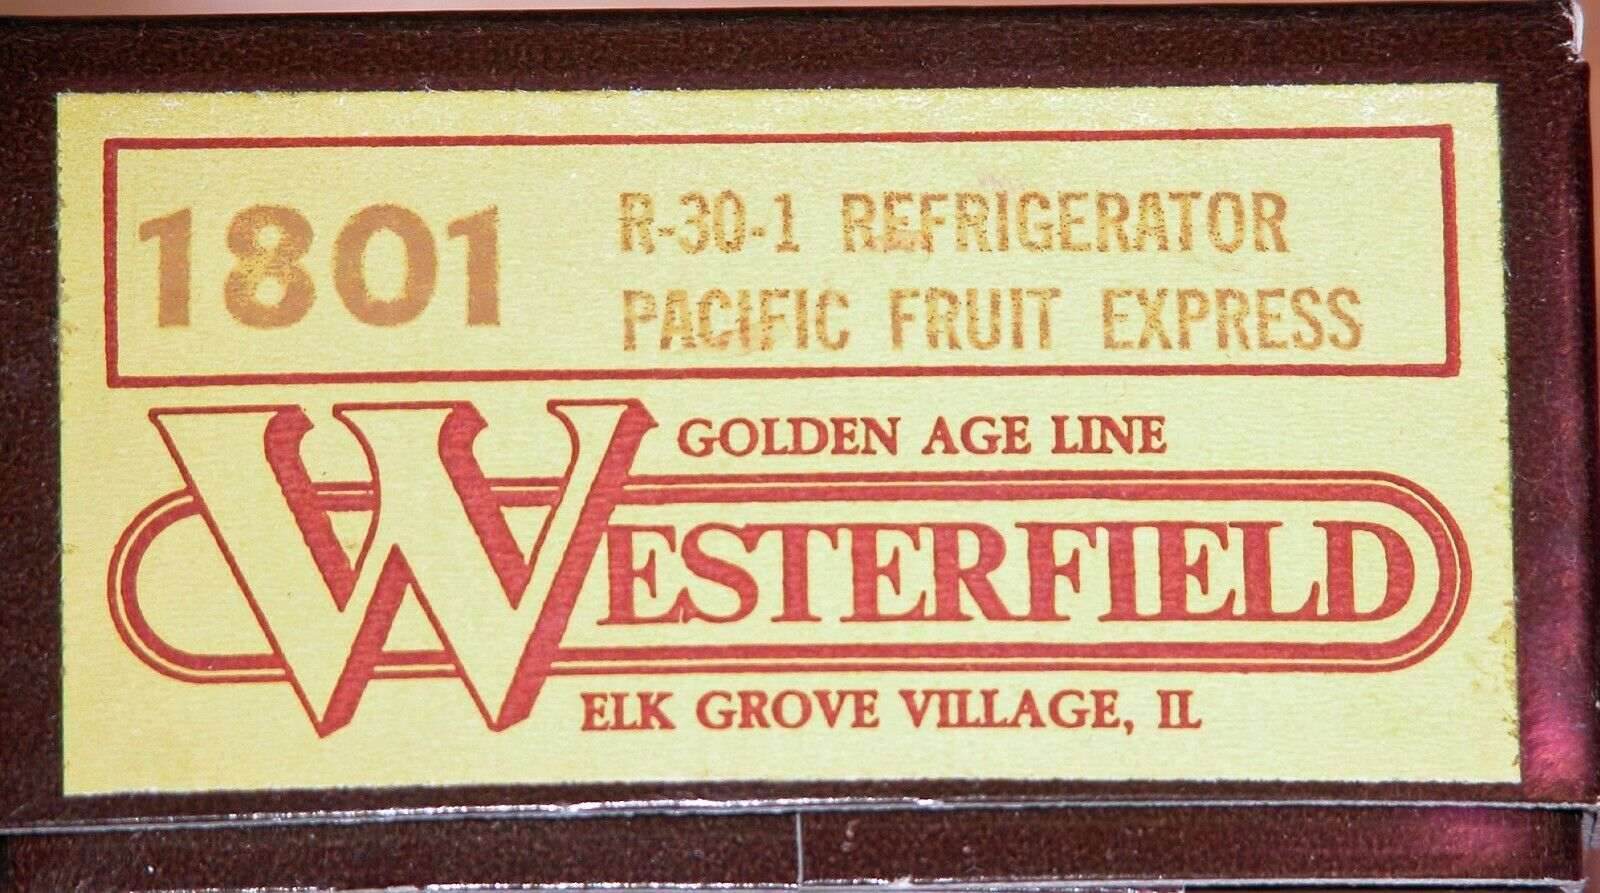 WESTERFIELD 1801 R-30-1 REFRIGERATOR PACIFIC FRUIT EXPRESS